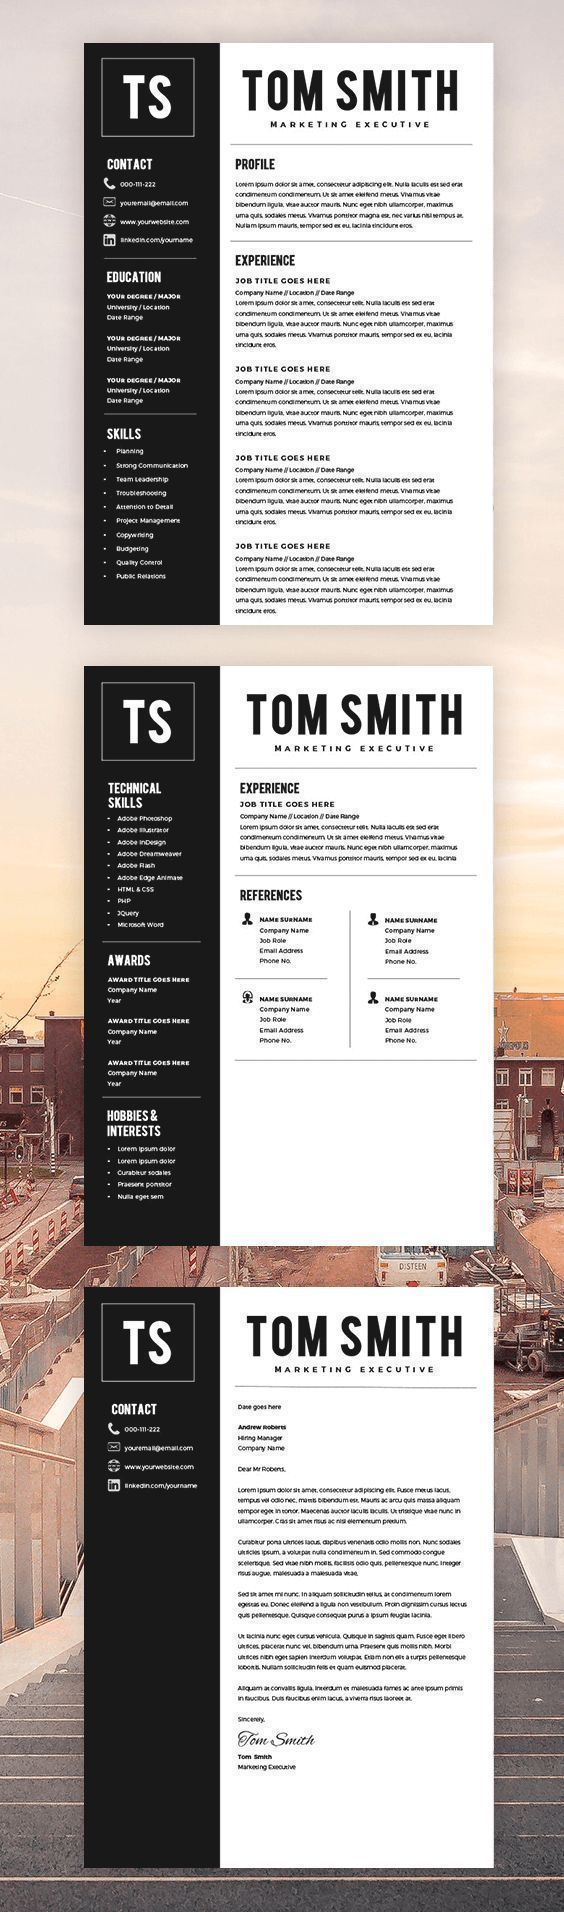 sample resignation letter 1 month notice%0A Two Page Resume Template  Resume Builder  CV Template  Free Cover Letter   MS